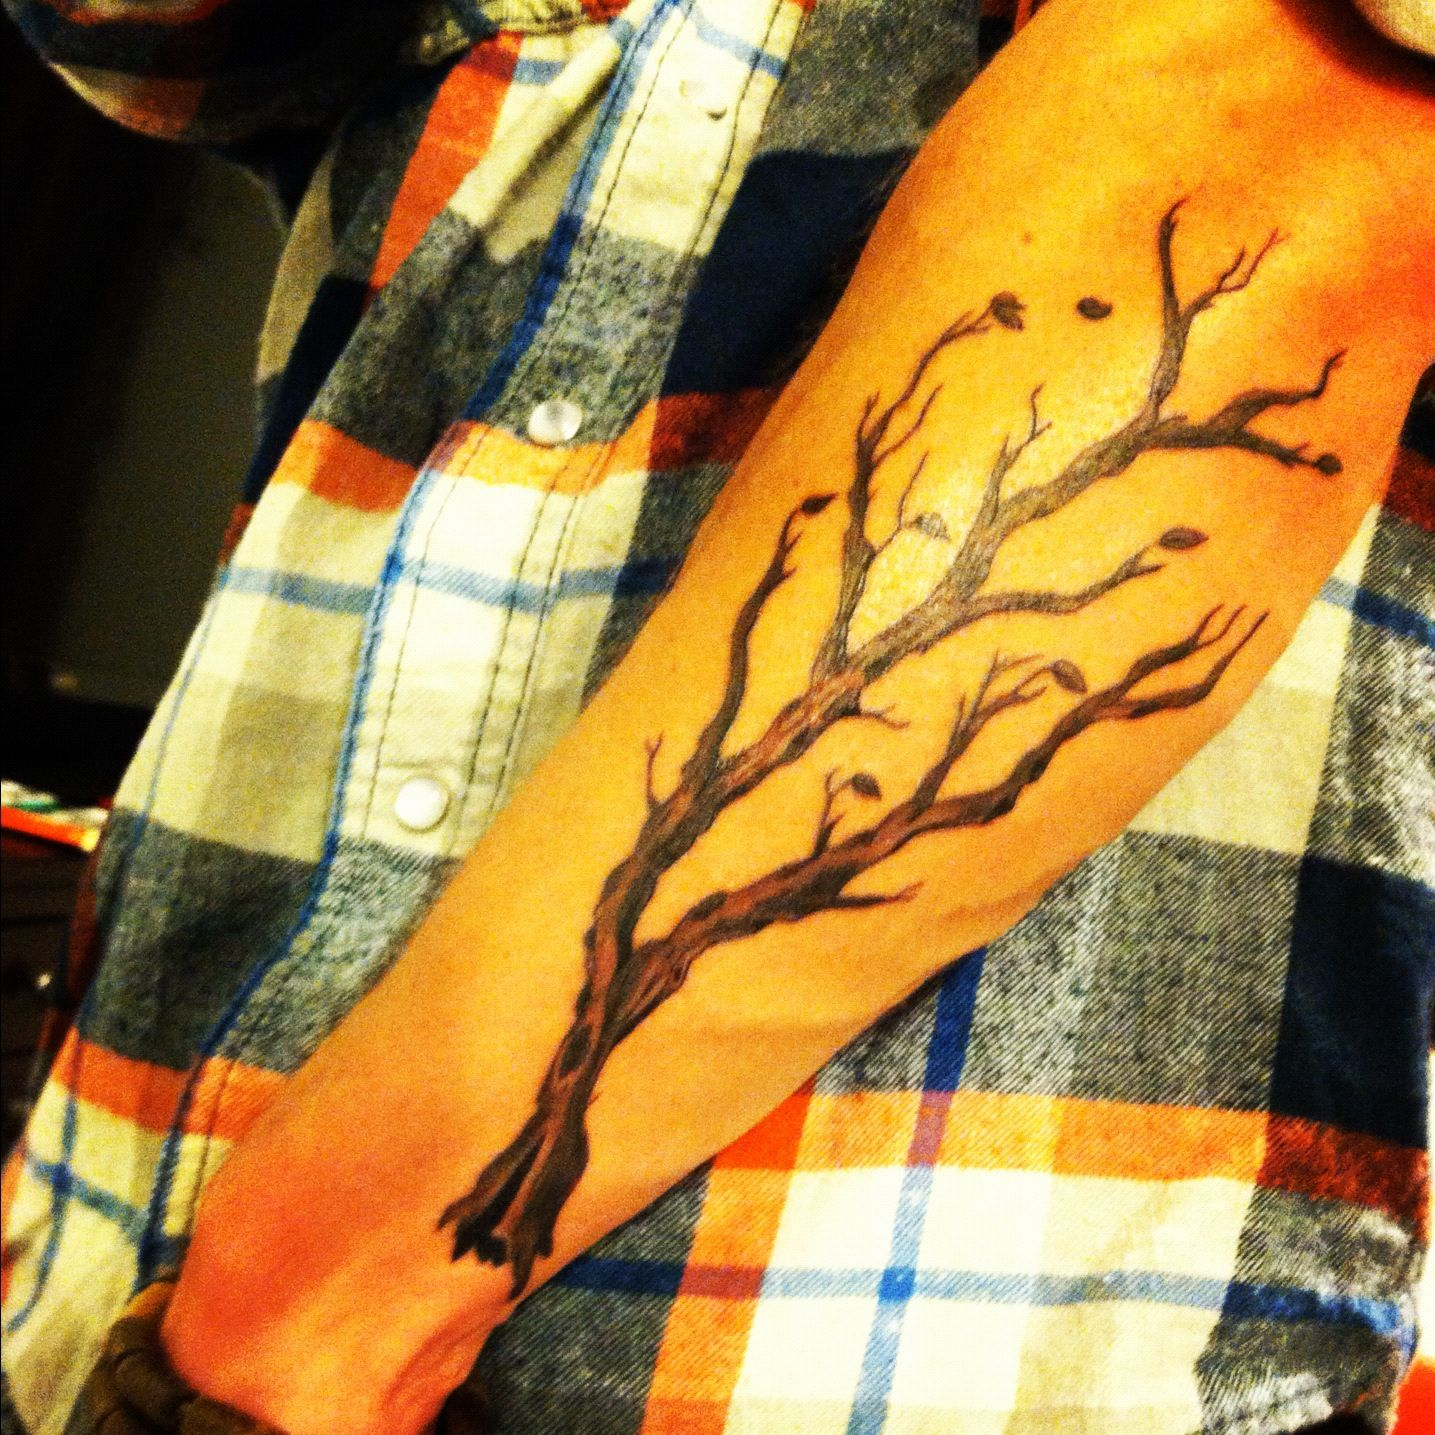 Dead tree branch tattoo tattoos pinterest for Death tree tattoo